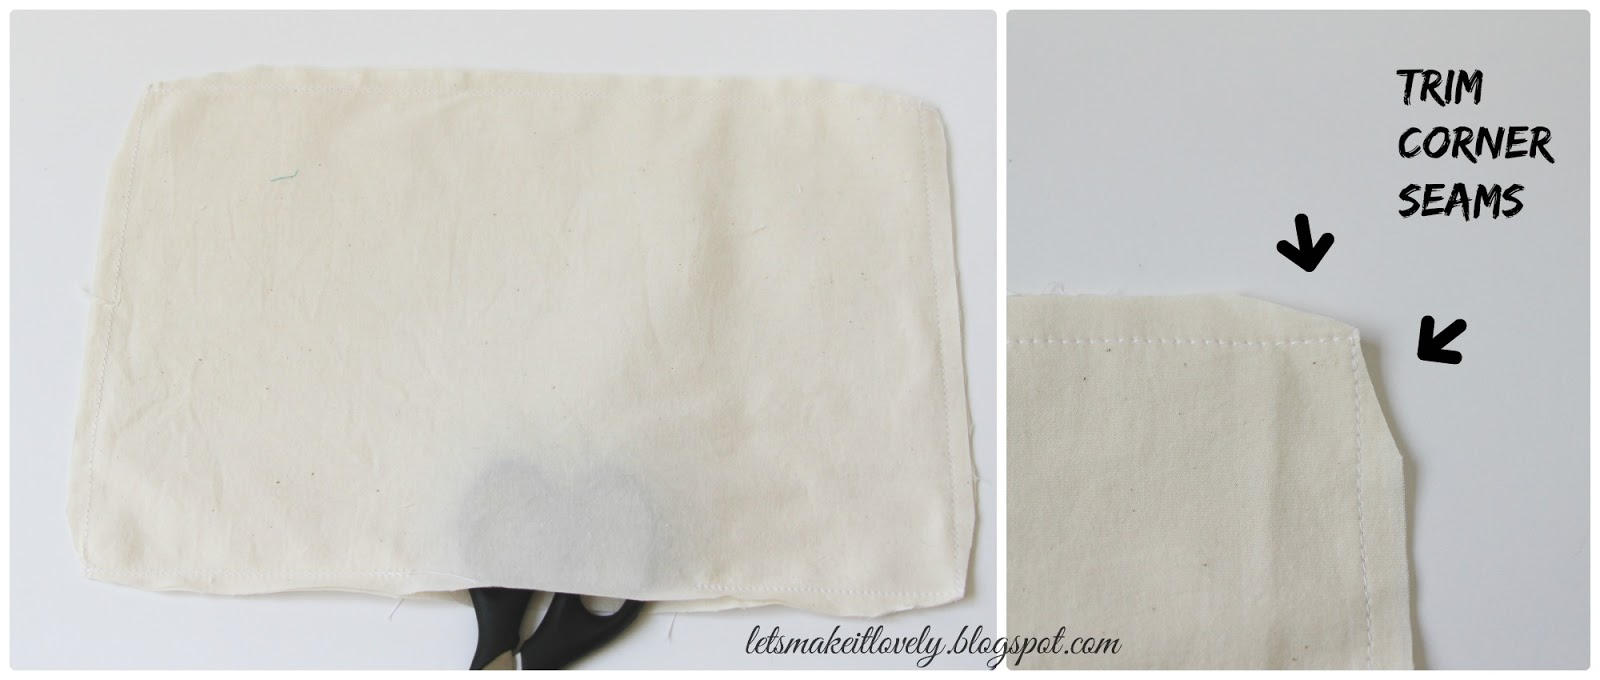 Faux Leather Base Tote Bag Step by step Tutorial Part-I (Includes measurements)